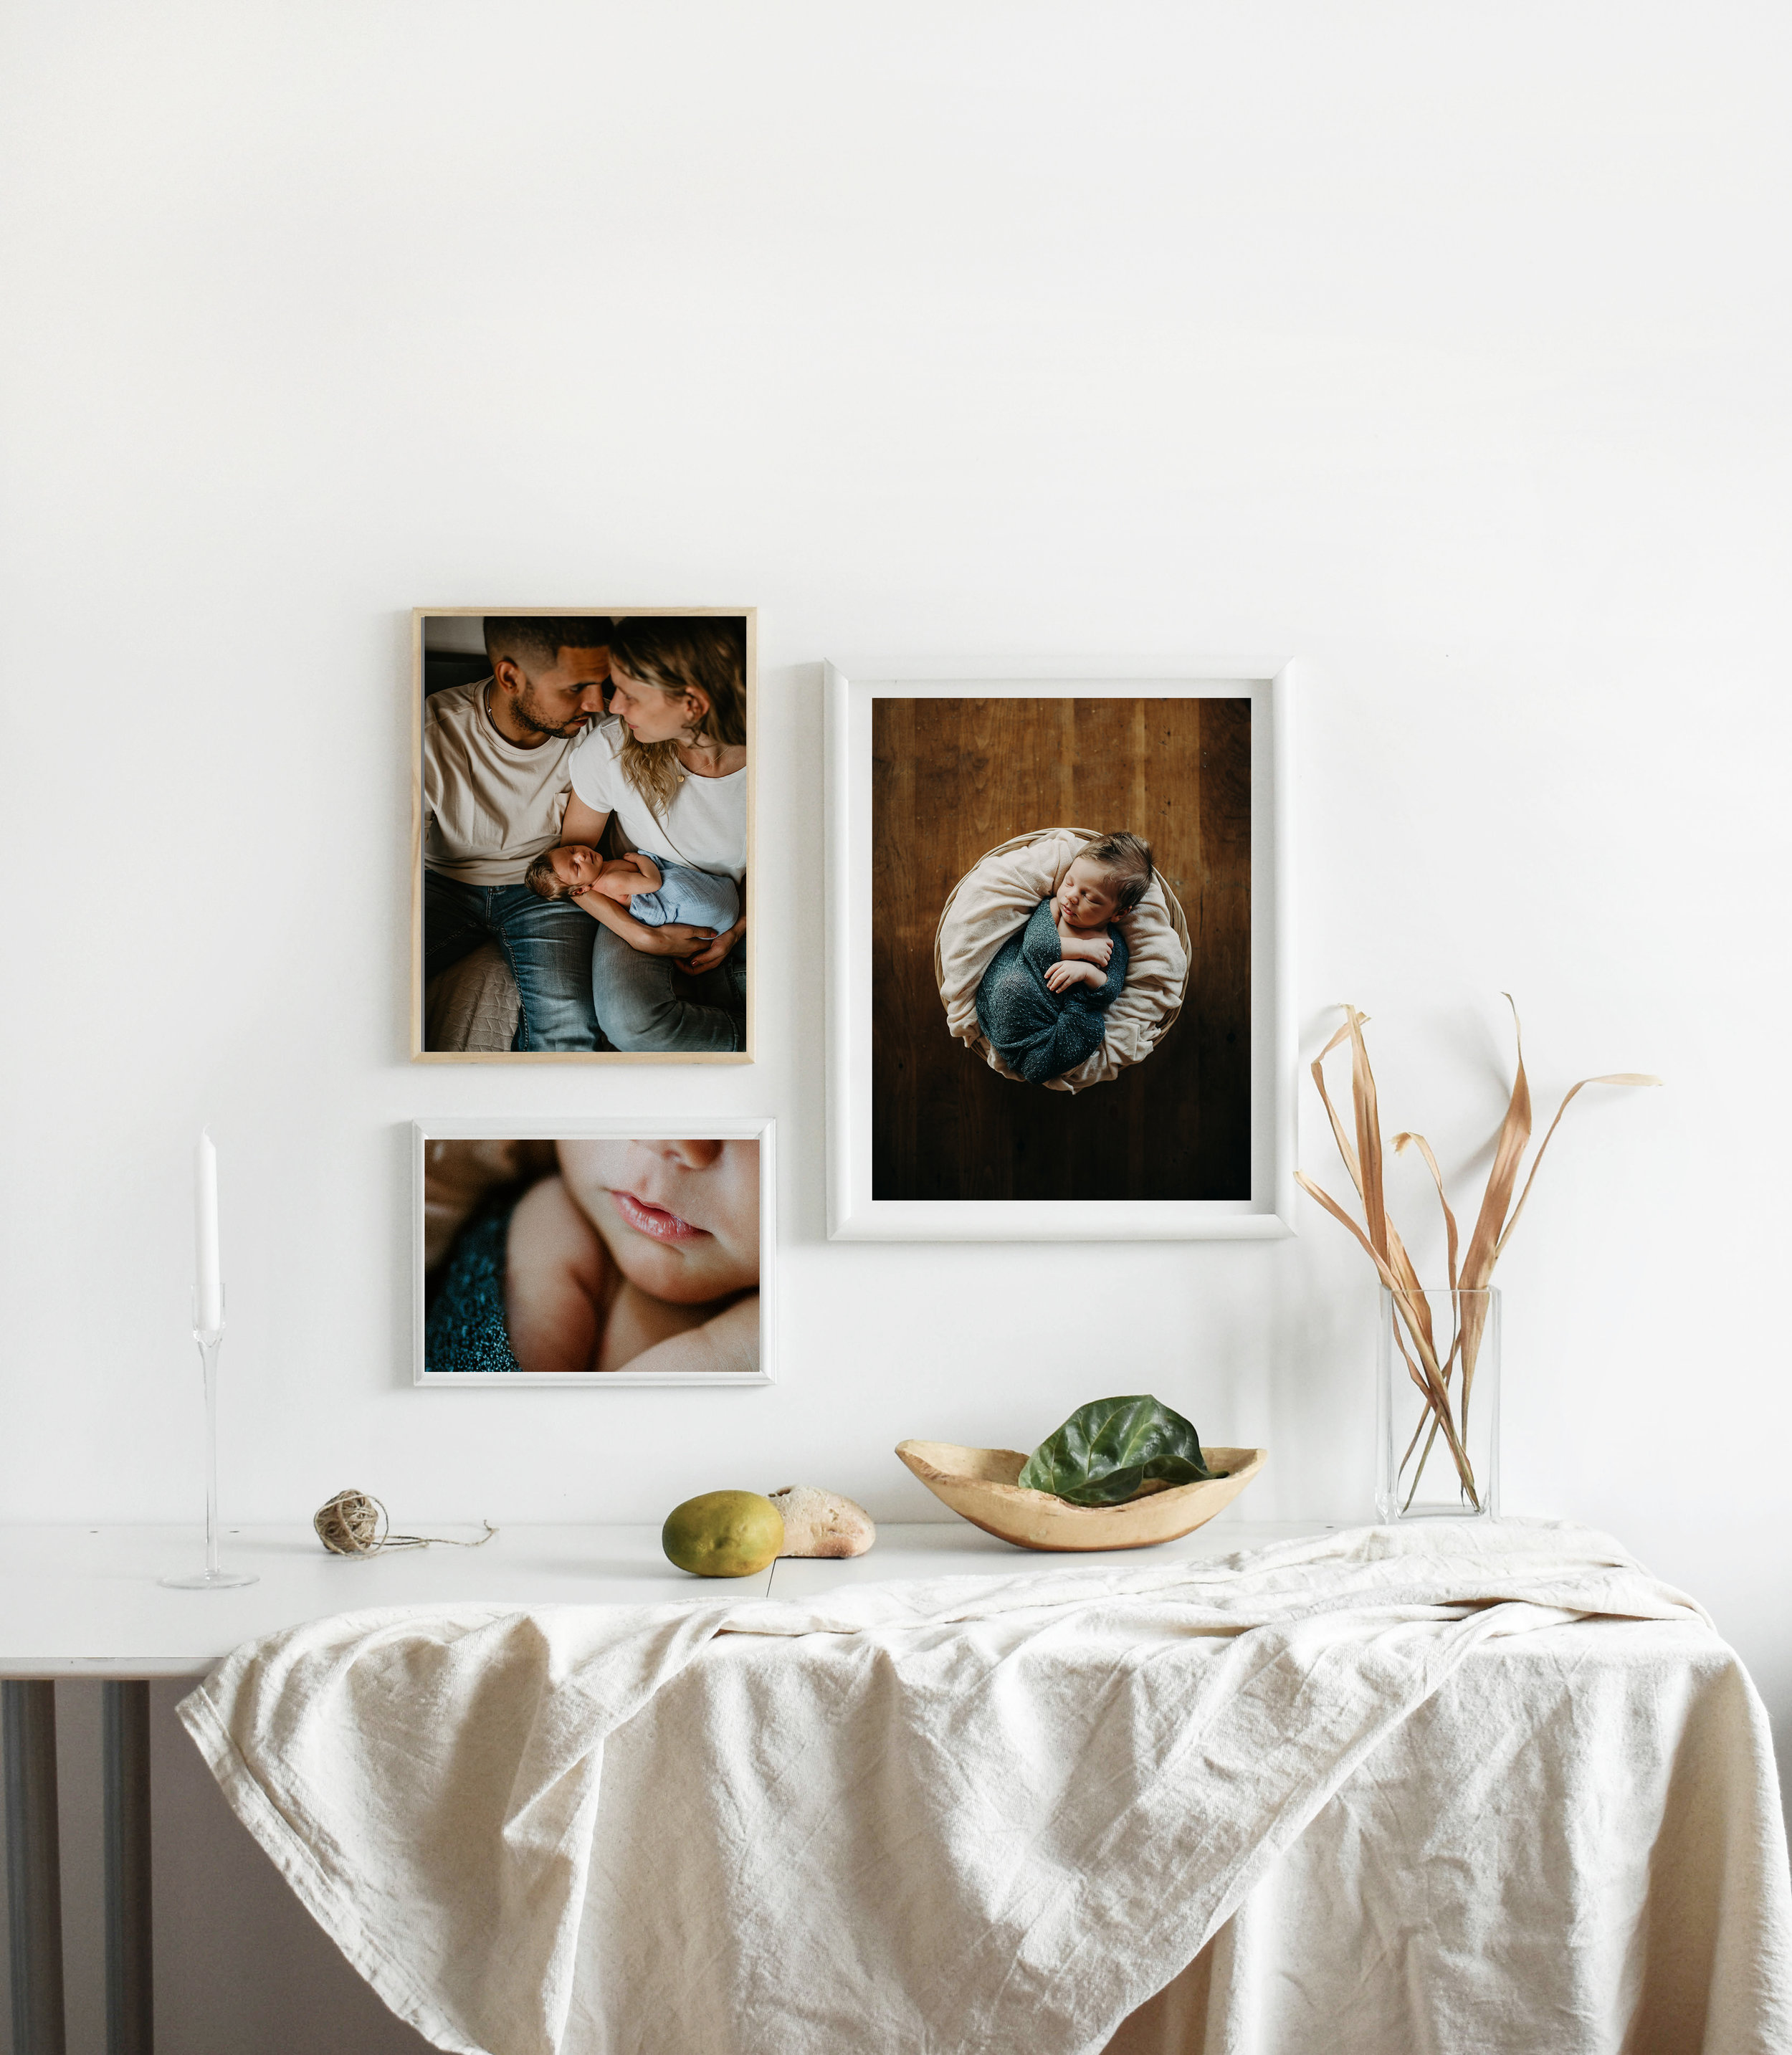 An Investment towards your heirloom. - Light + Heir Studios prides itself on delivering clients beautiful museum quality prints to hang on the walls of their home for decades to come.Hand picked images, carefully crafted to always ensure you remember the most important parts of your life.